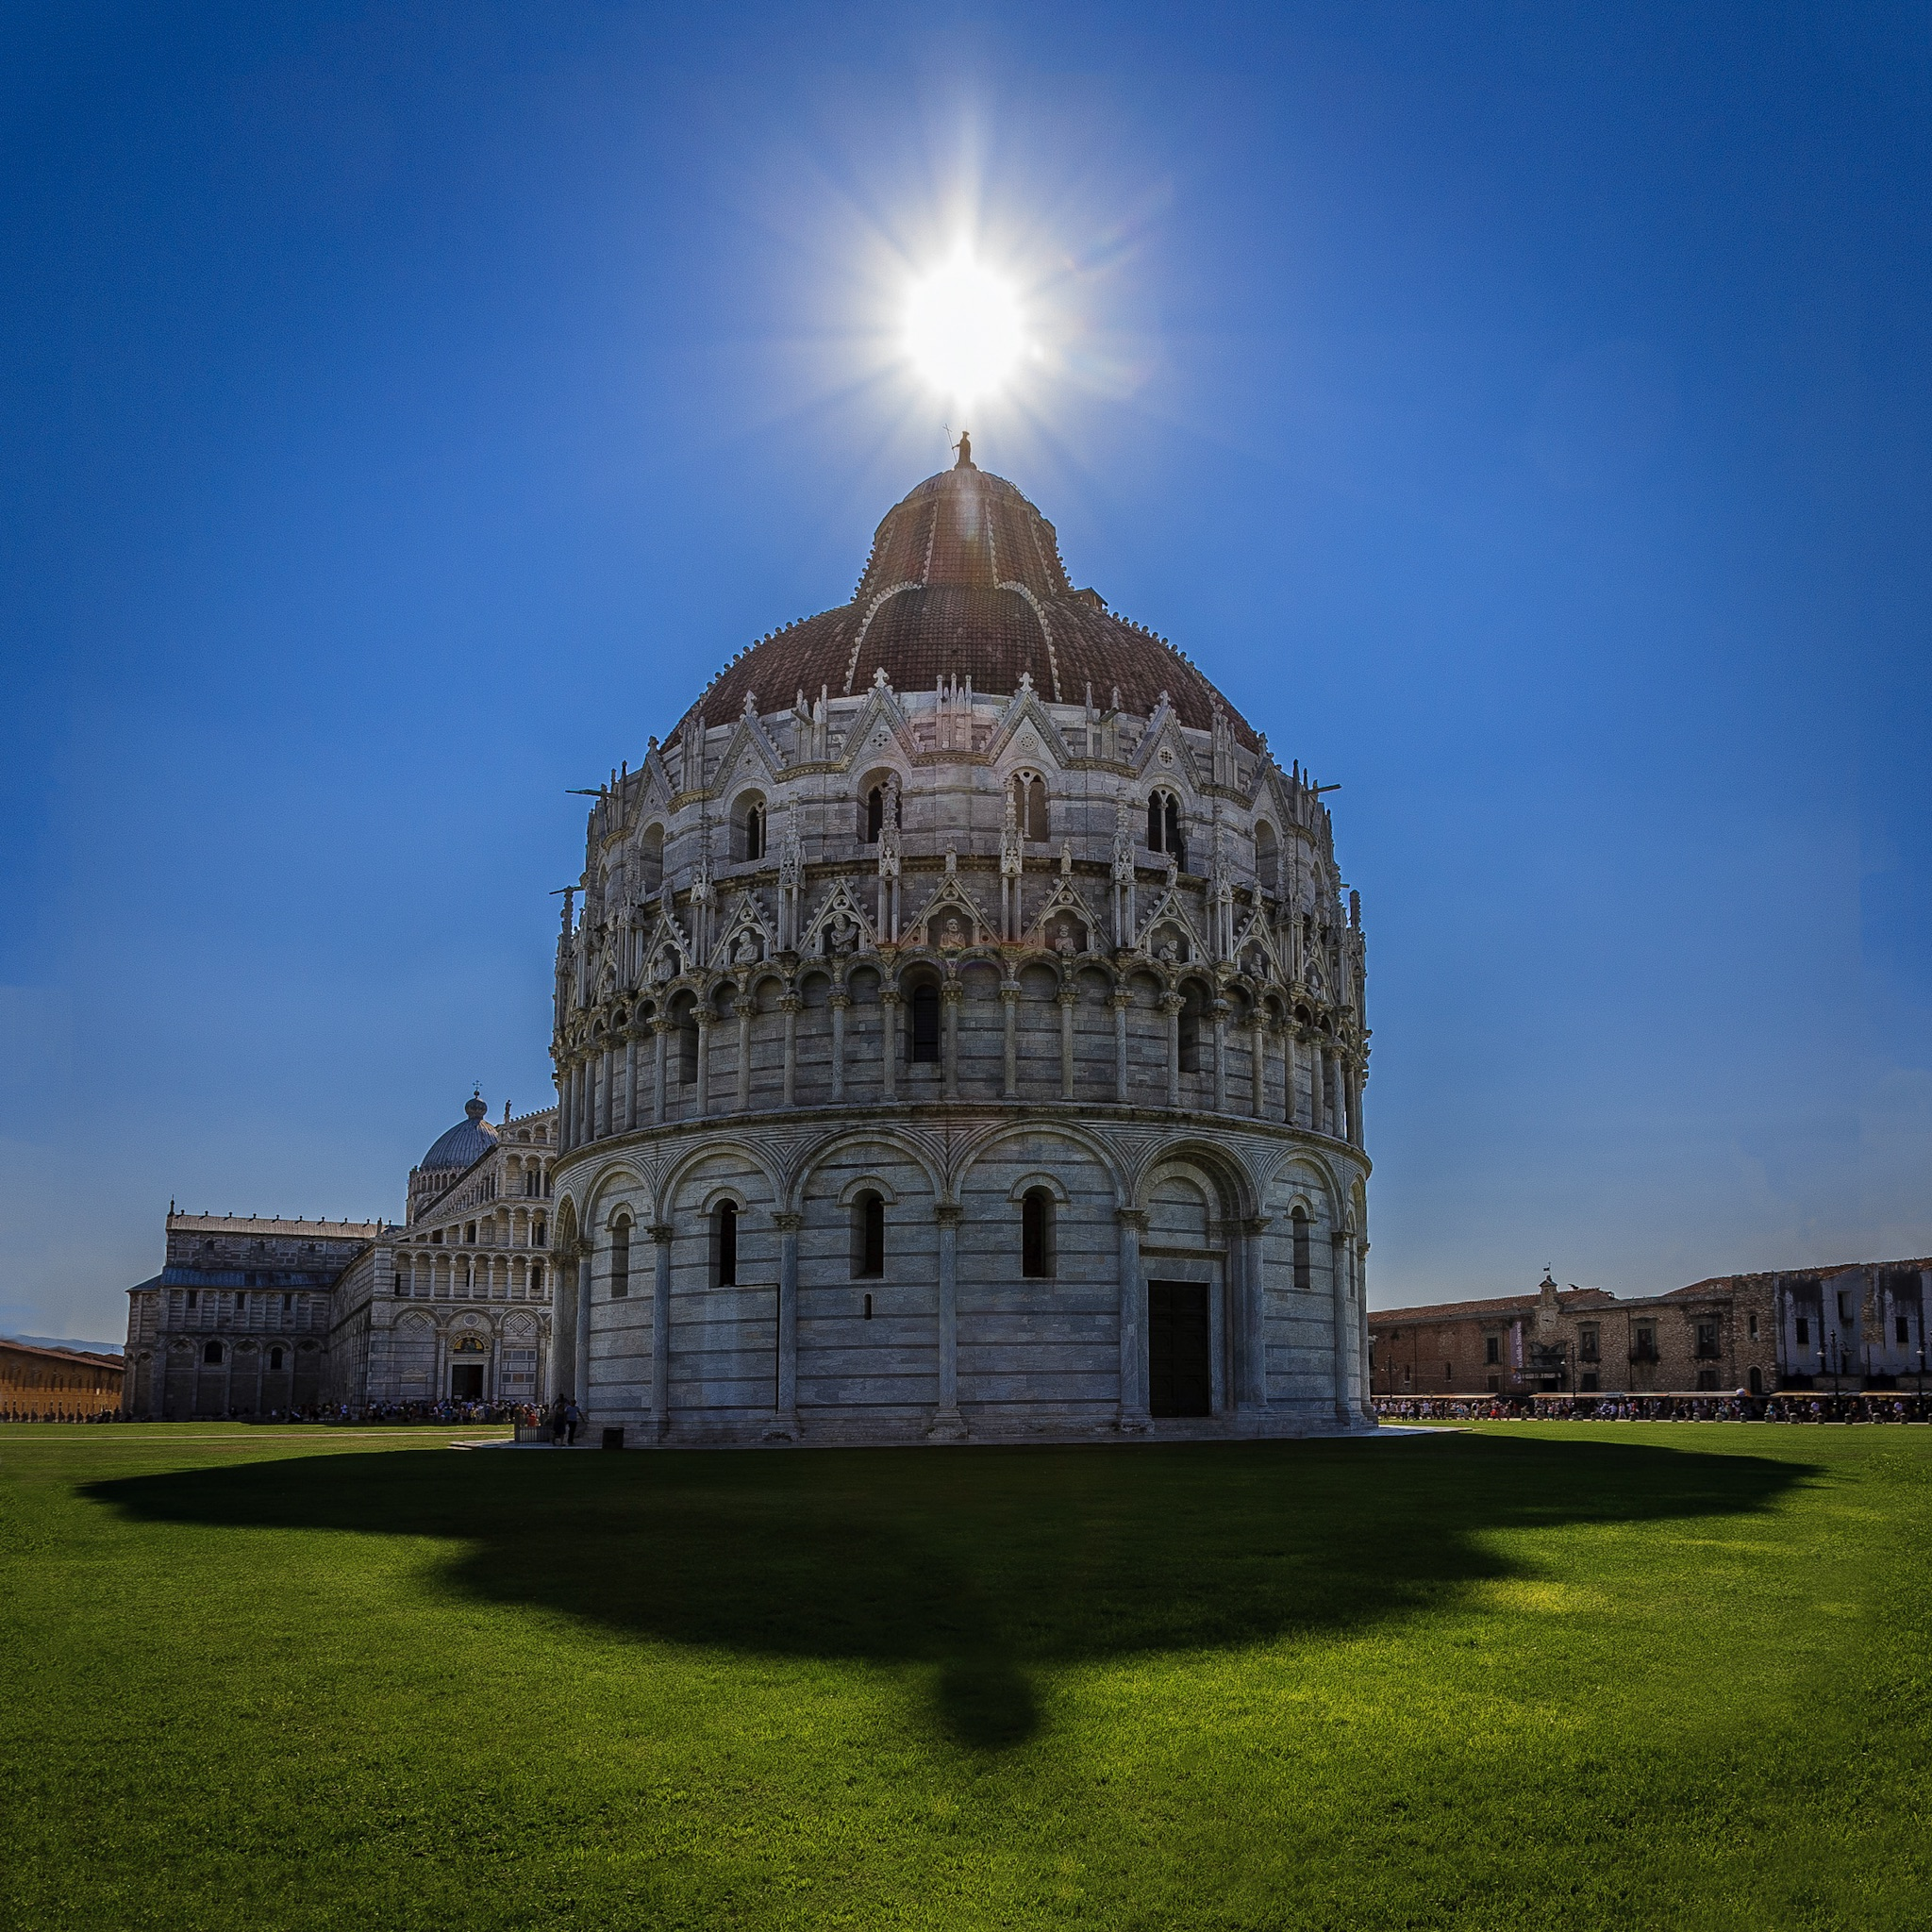 Picture of the Battistero di San Giovanni In Pisa by Rick McEvoy Architectural Photographer